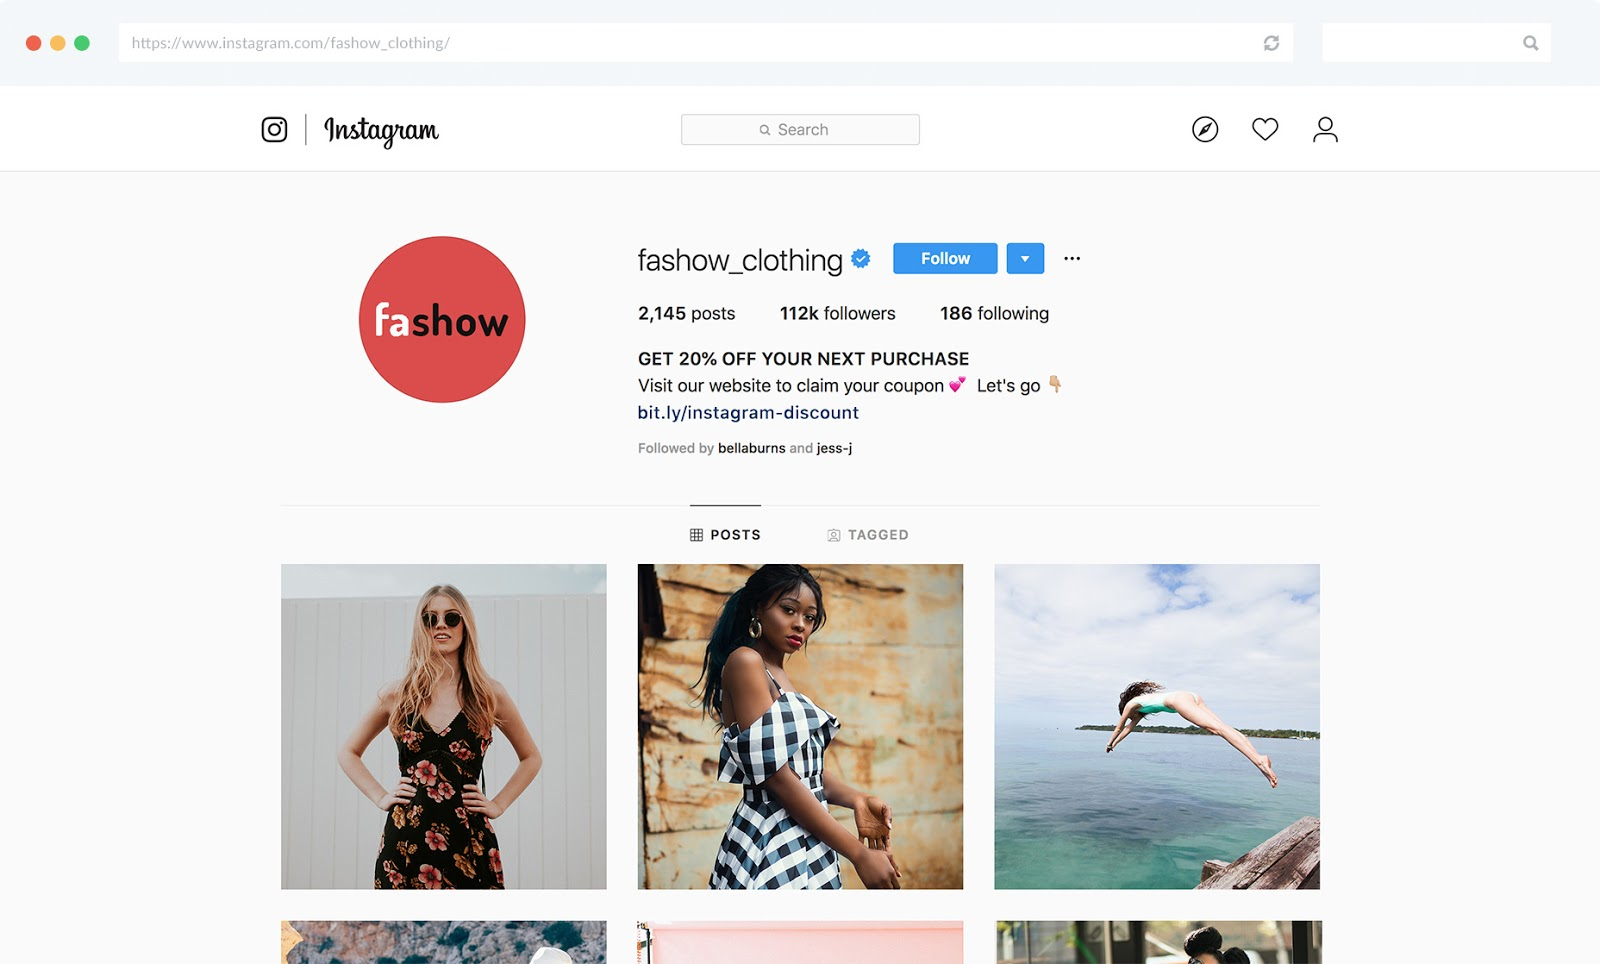 fashow-clothing-instagram-coupon-1